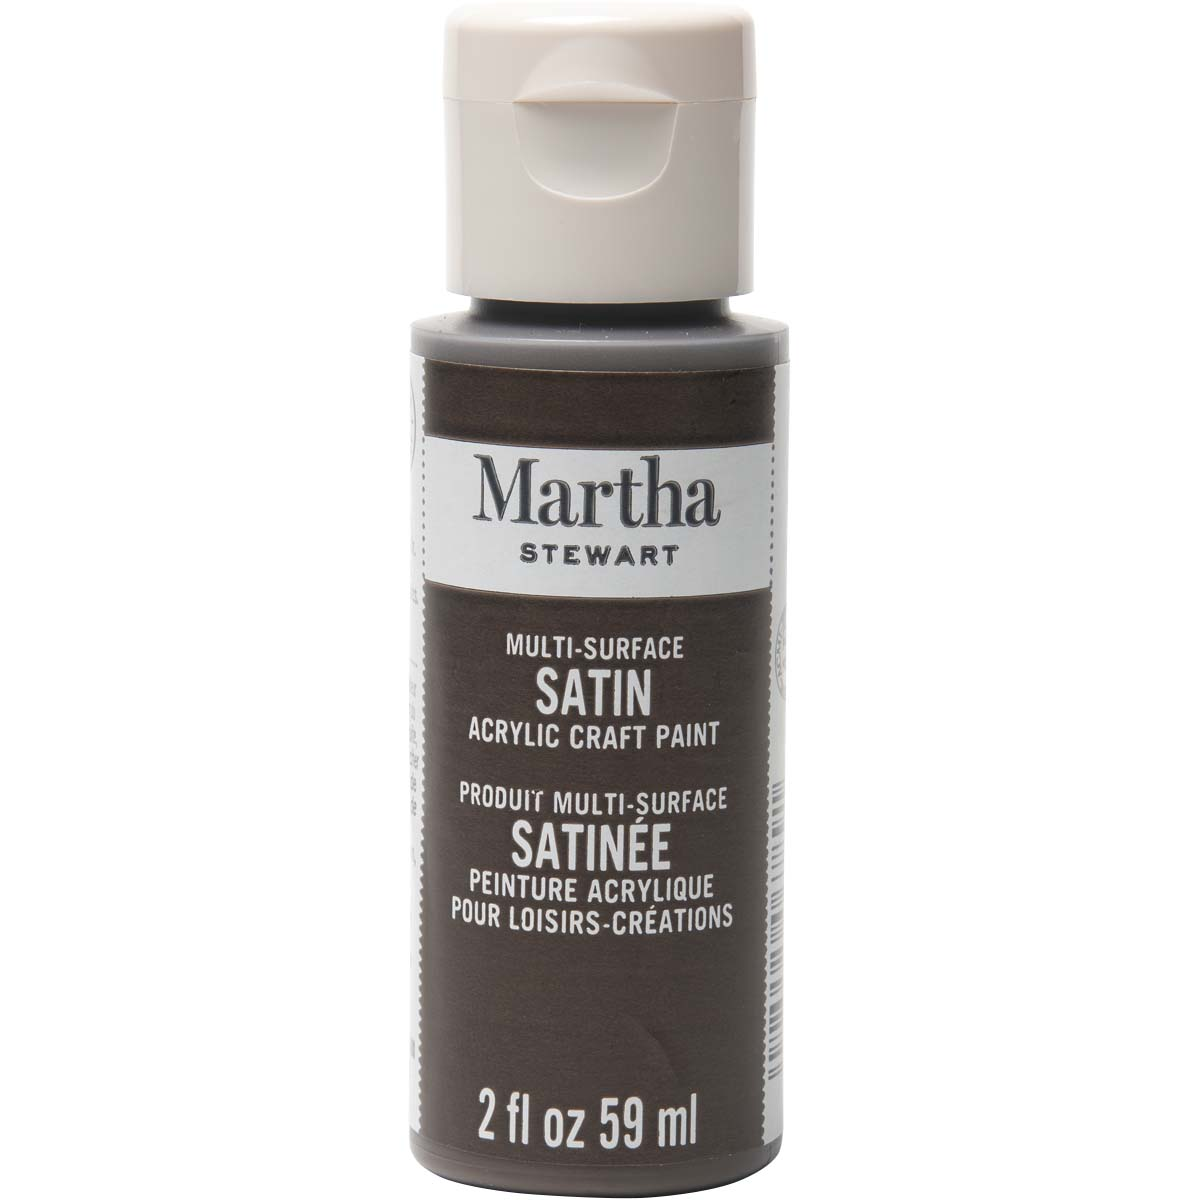 Martha Stewart® 2oz Multi-Surface Satin Acrylic Craft Paint - Vanilla Bean